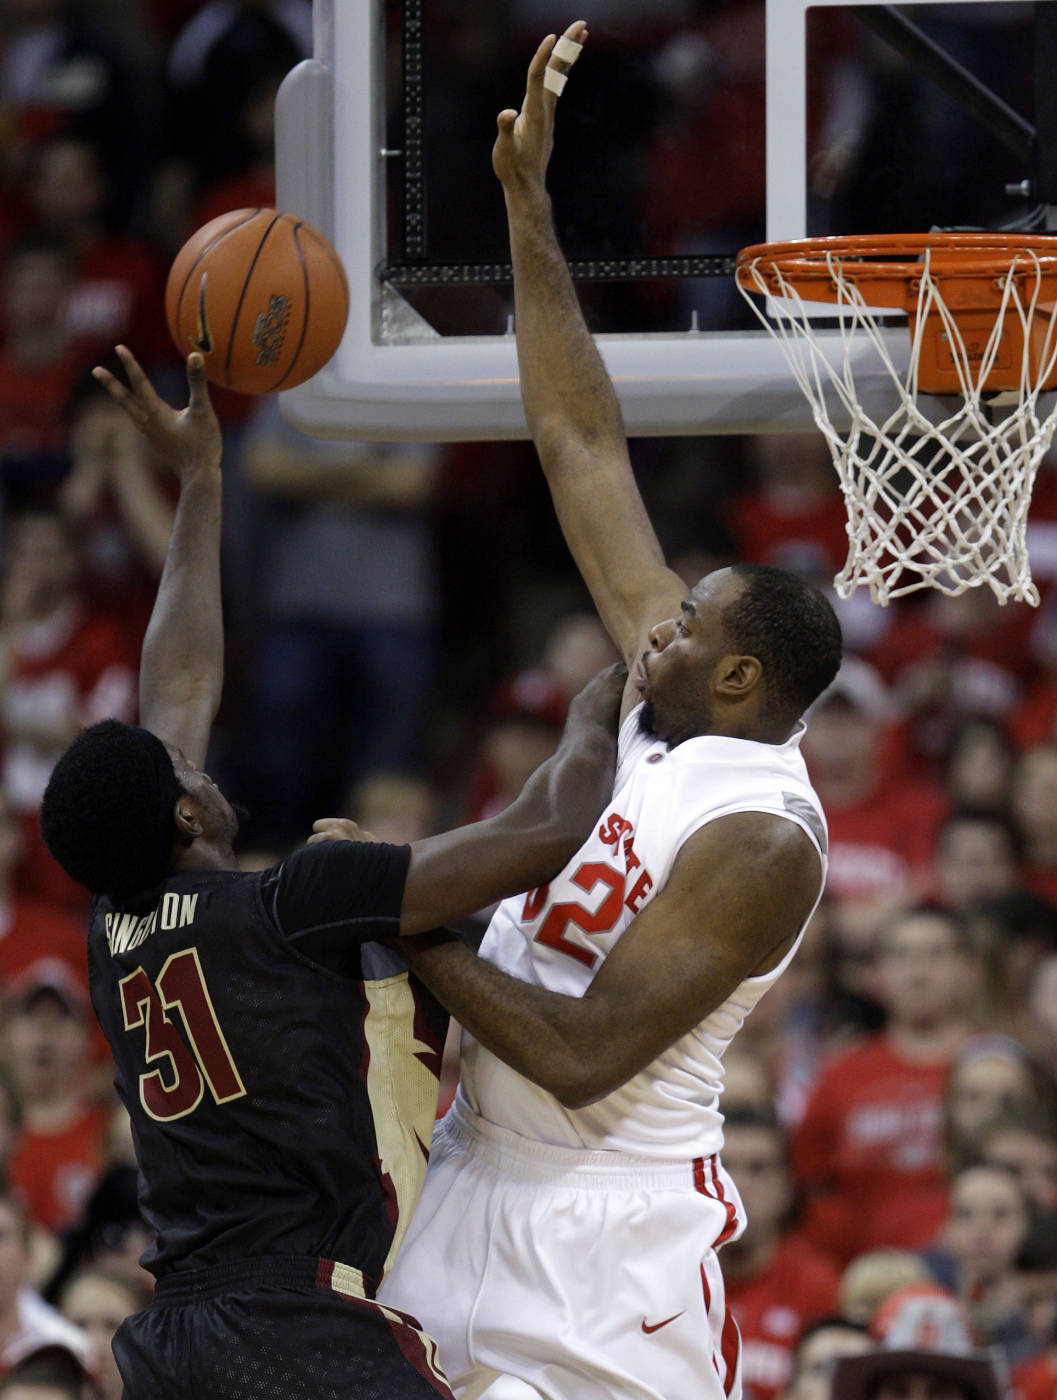 Florida State's Chris Singleton, left, tries to shoot over Ohio State's Dallas Lauderdale during the second half.